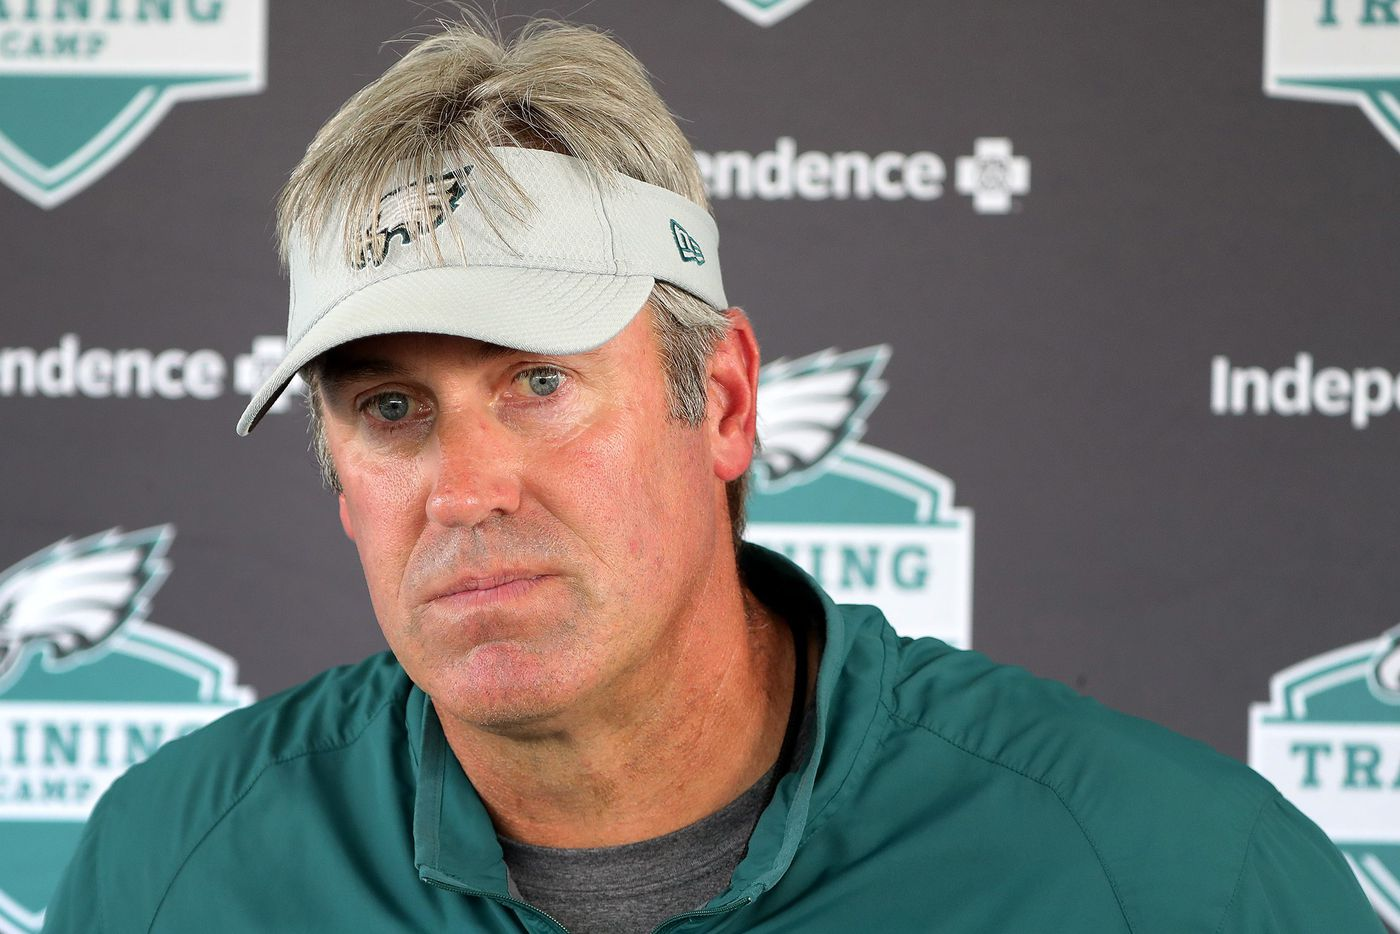 The Eagles fight complacency as they look to repeat